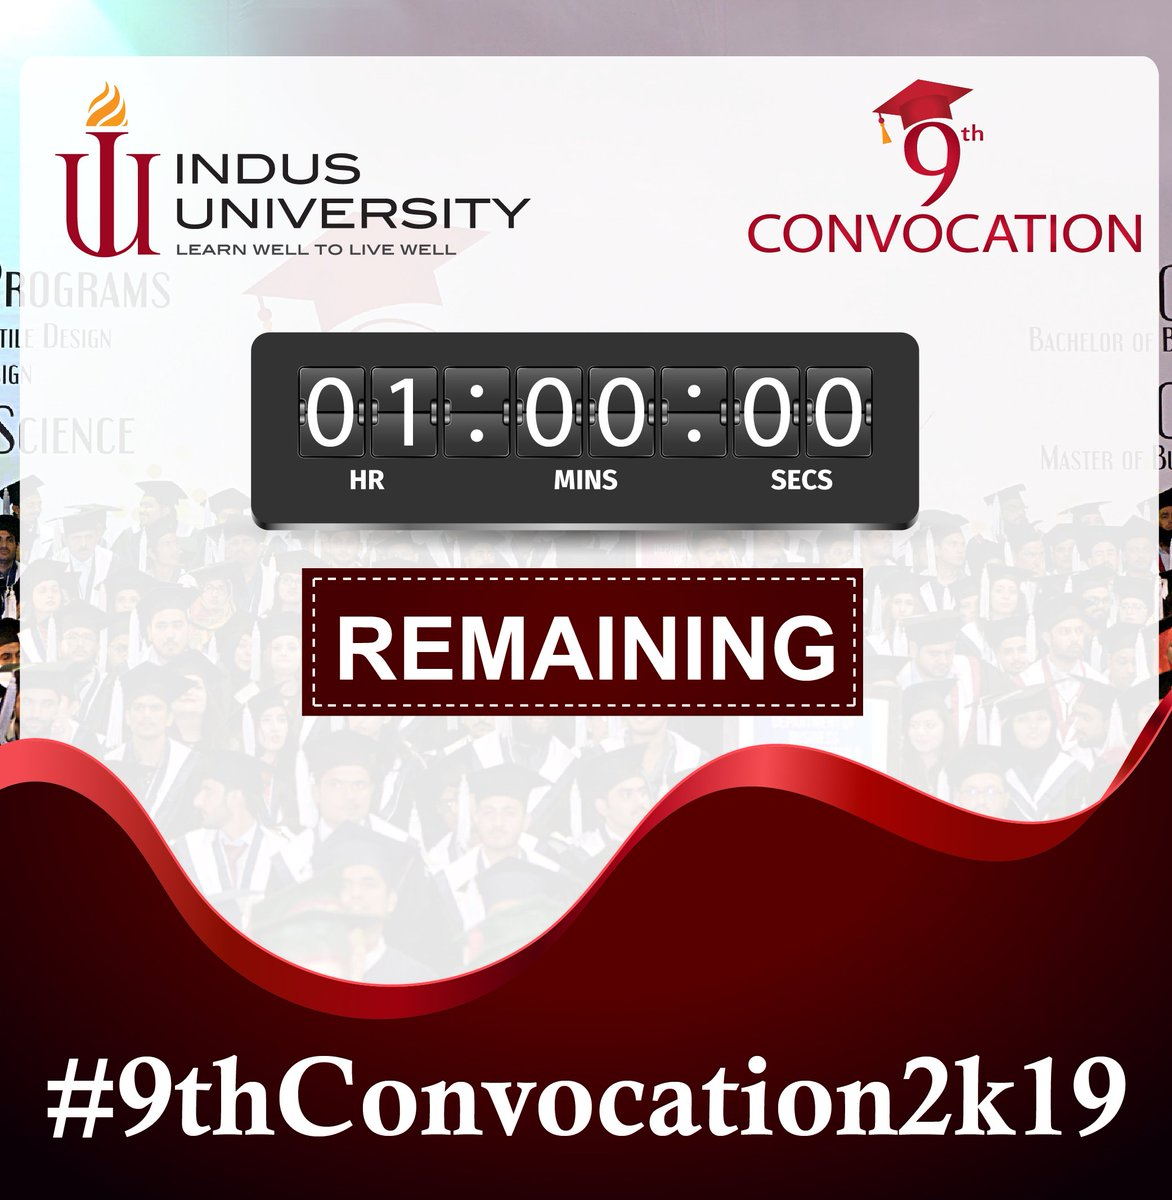 9thconvocation hashtag on Twitter